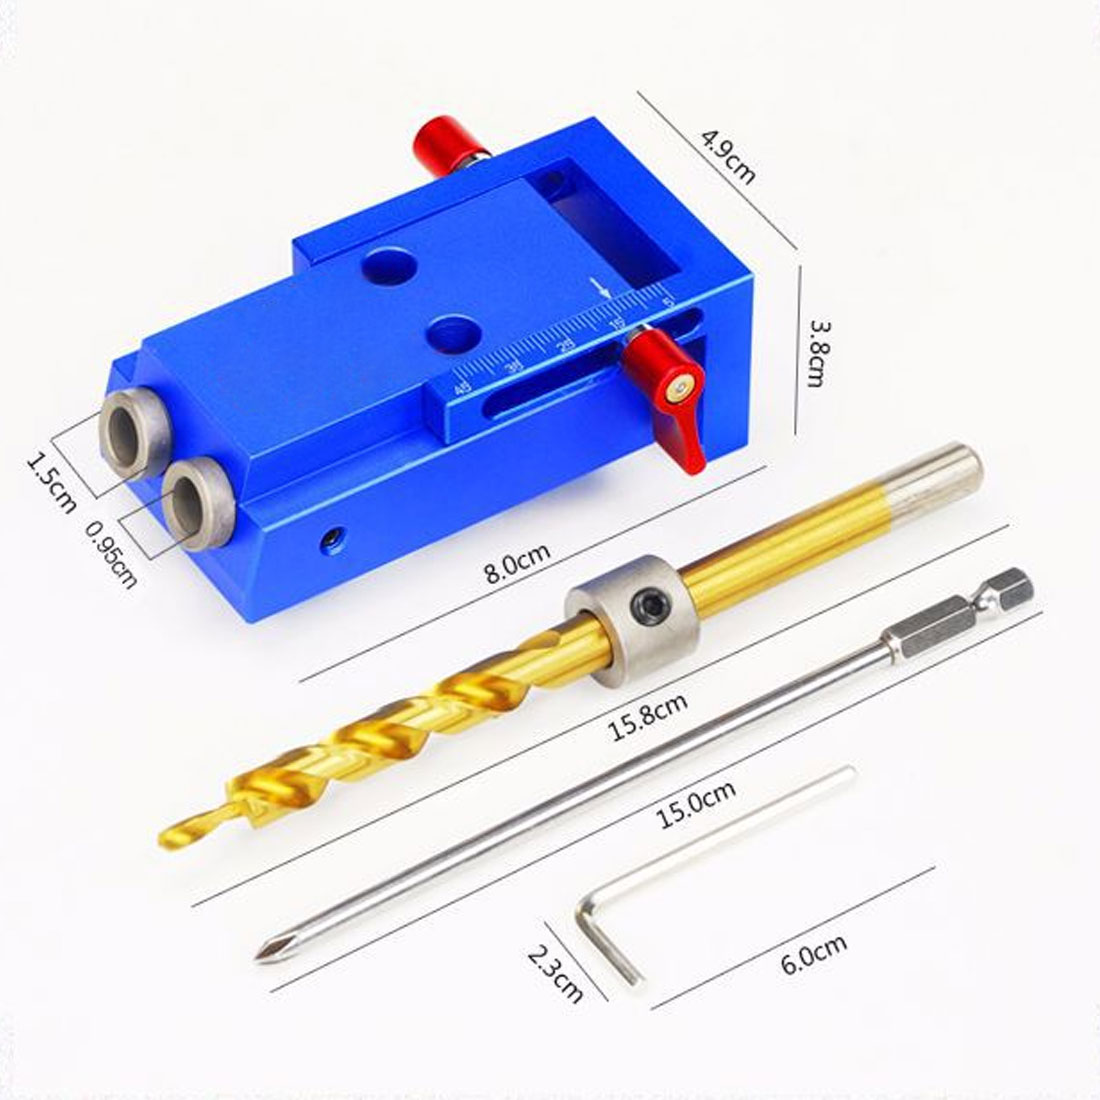 Woodworking Pocket Hole Jig Kit 6/8/10mm Angle Drill Guide Set Hole Puncher Locator Jig Drill Bit Set For DIY Carpentry Tools ciker new preppy style 4pcs set women printing canvas backpacks high quality school bags mochila rucksack fashion travel bags